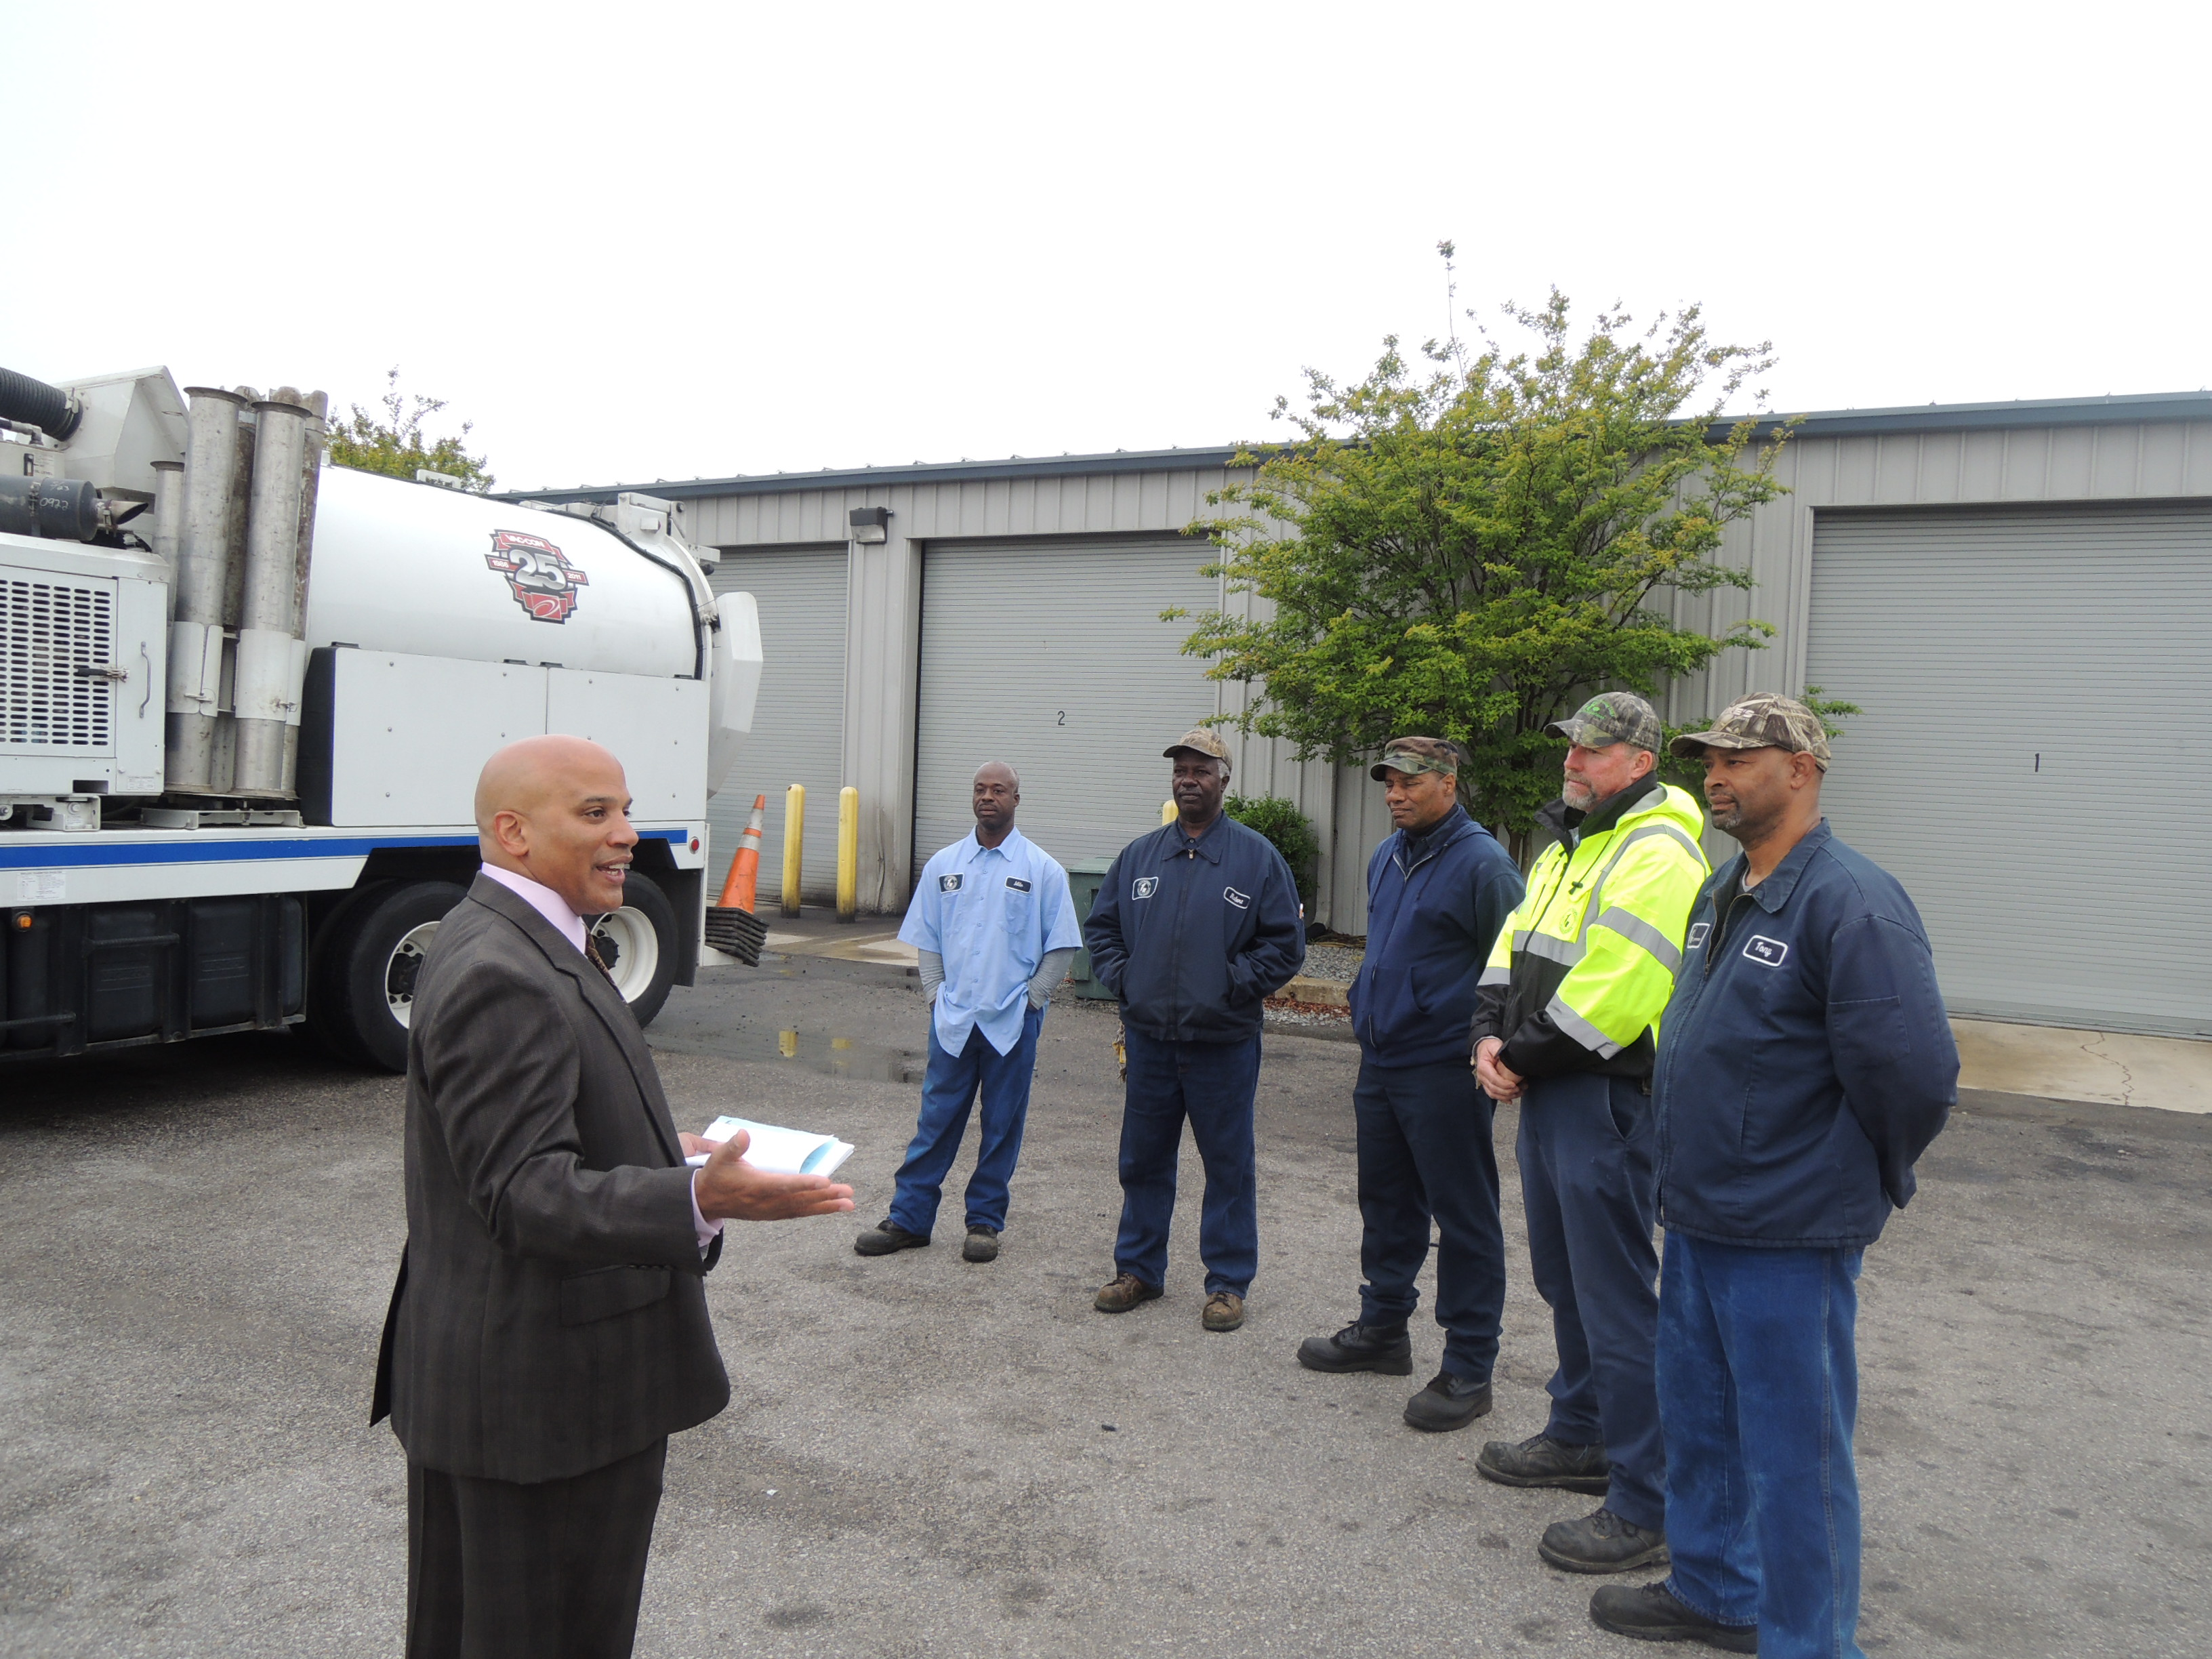 Wastewater employees thanked for job well done